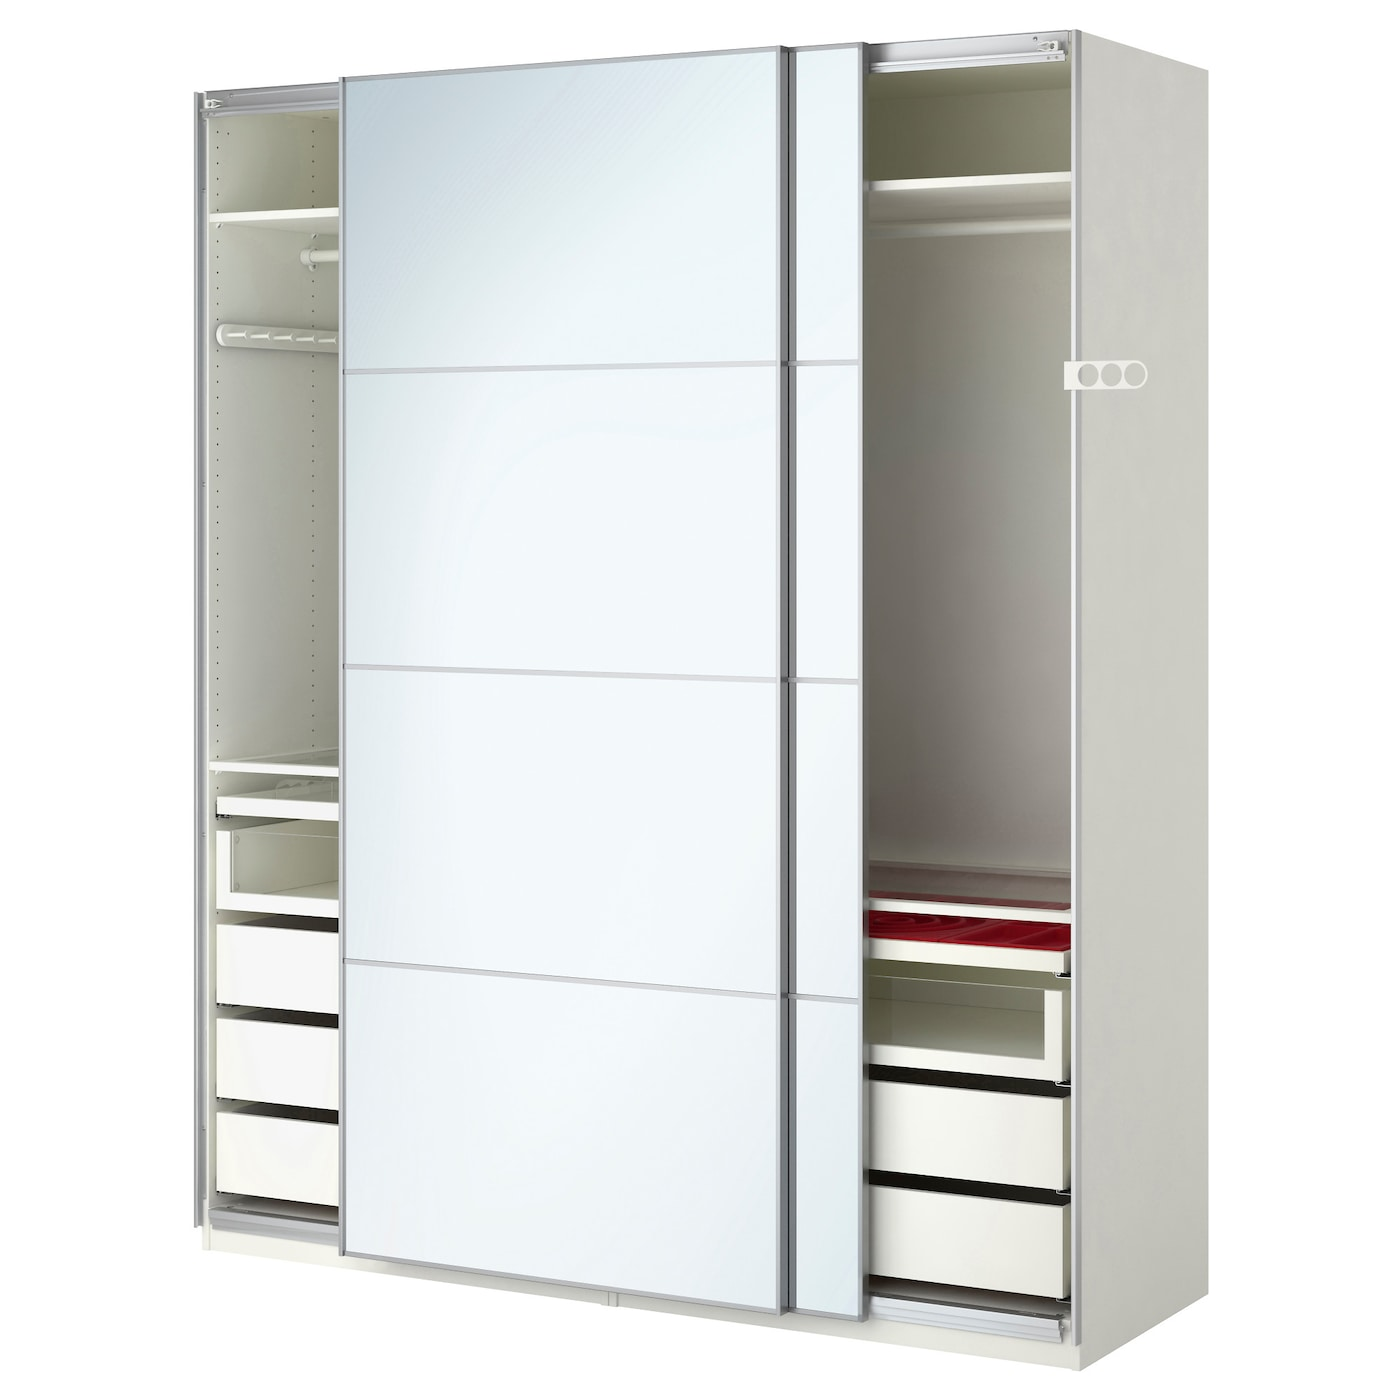 pax wardrobe white auli mirror glass 200x66x236 cm ikea. Black Bedroom Furniture Sets. Home Design Ideas